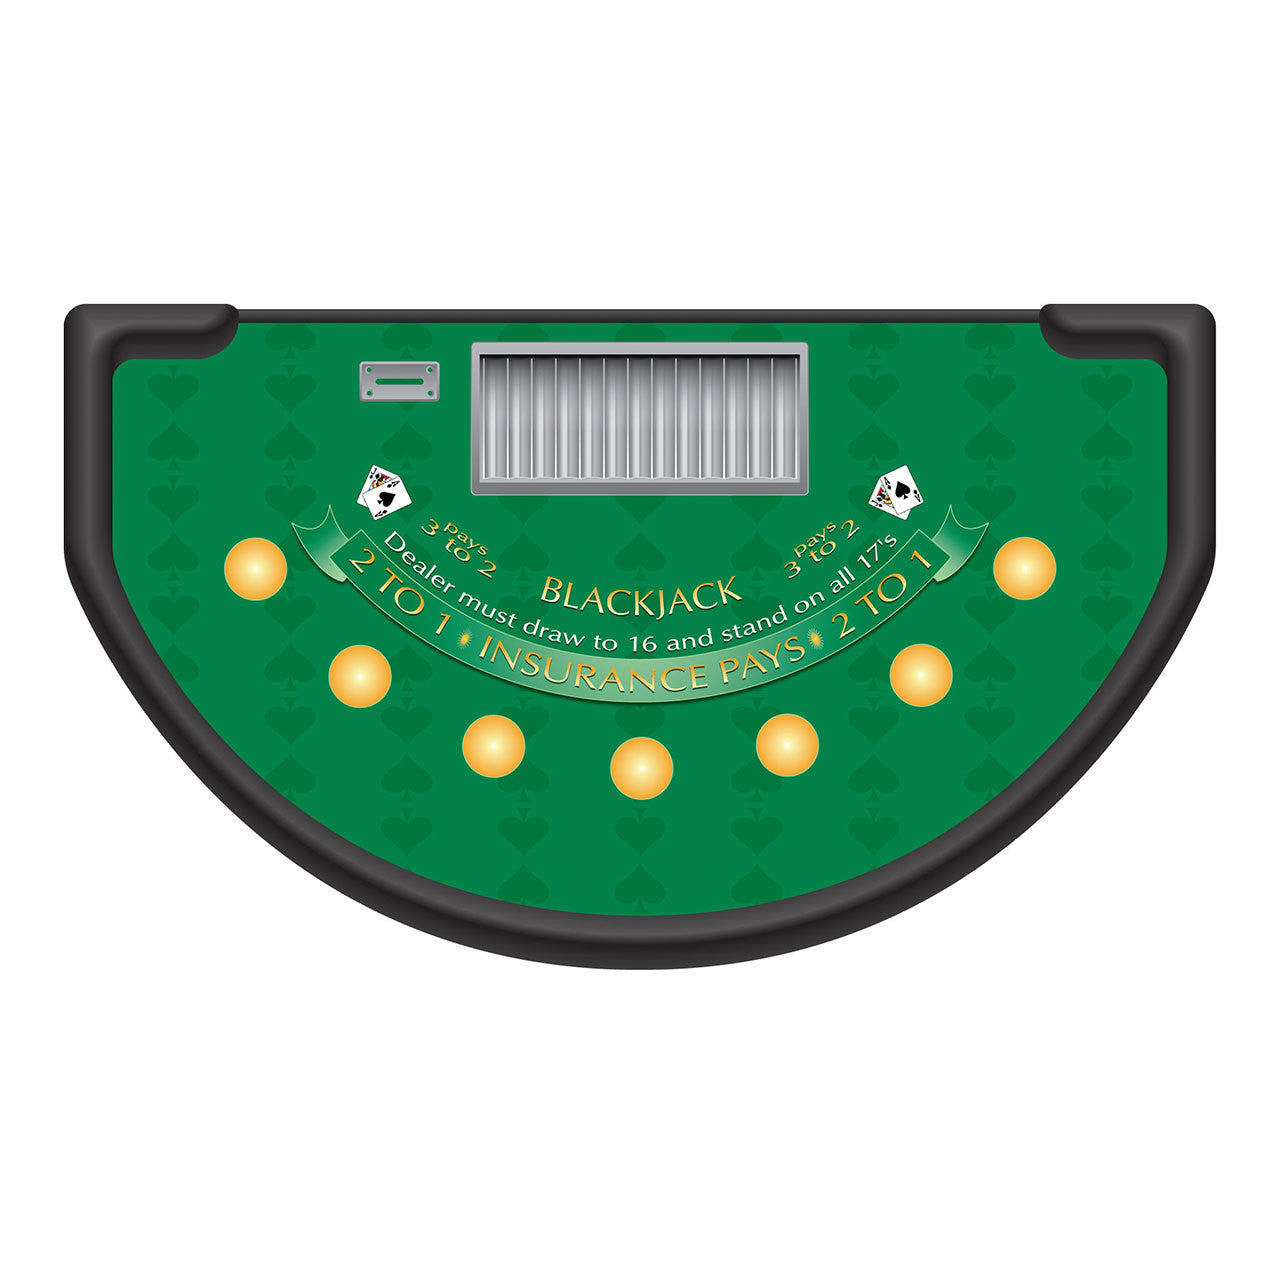 Blackjack table top view - Spade Design Blackjack Layout Green Casino Supply 1